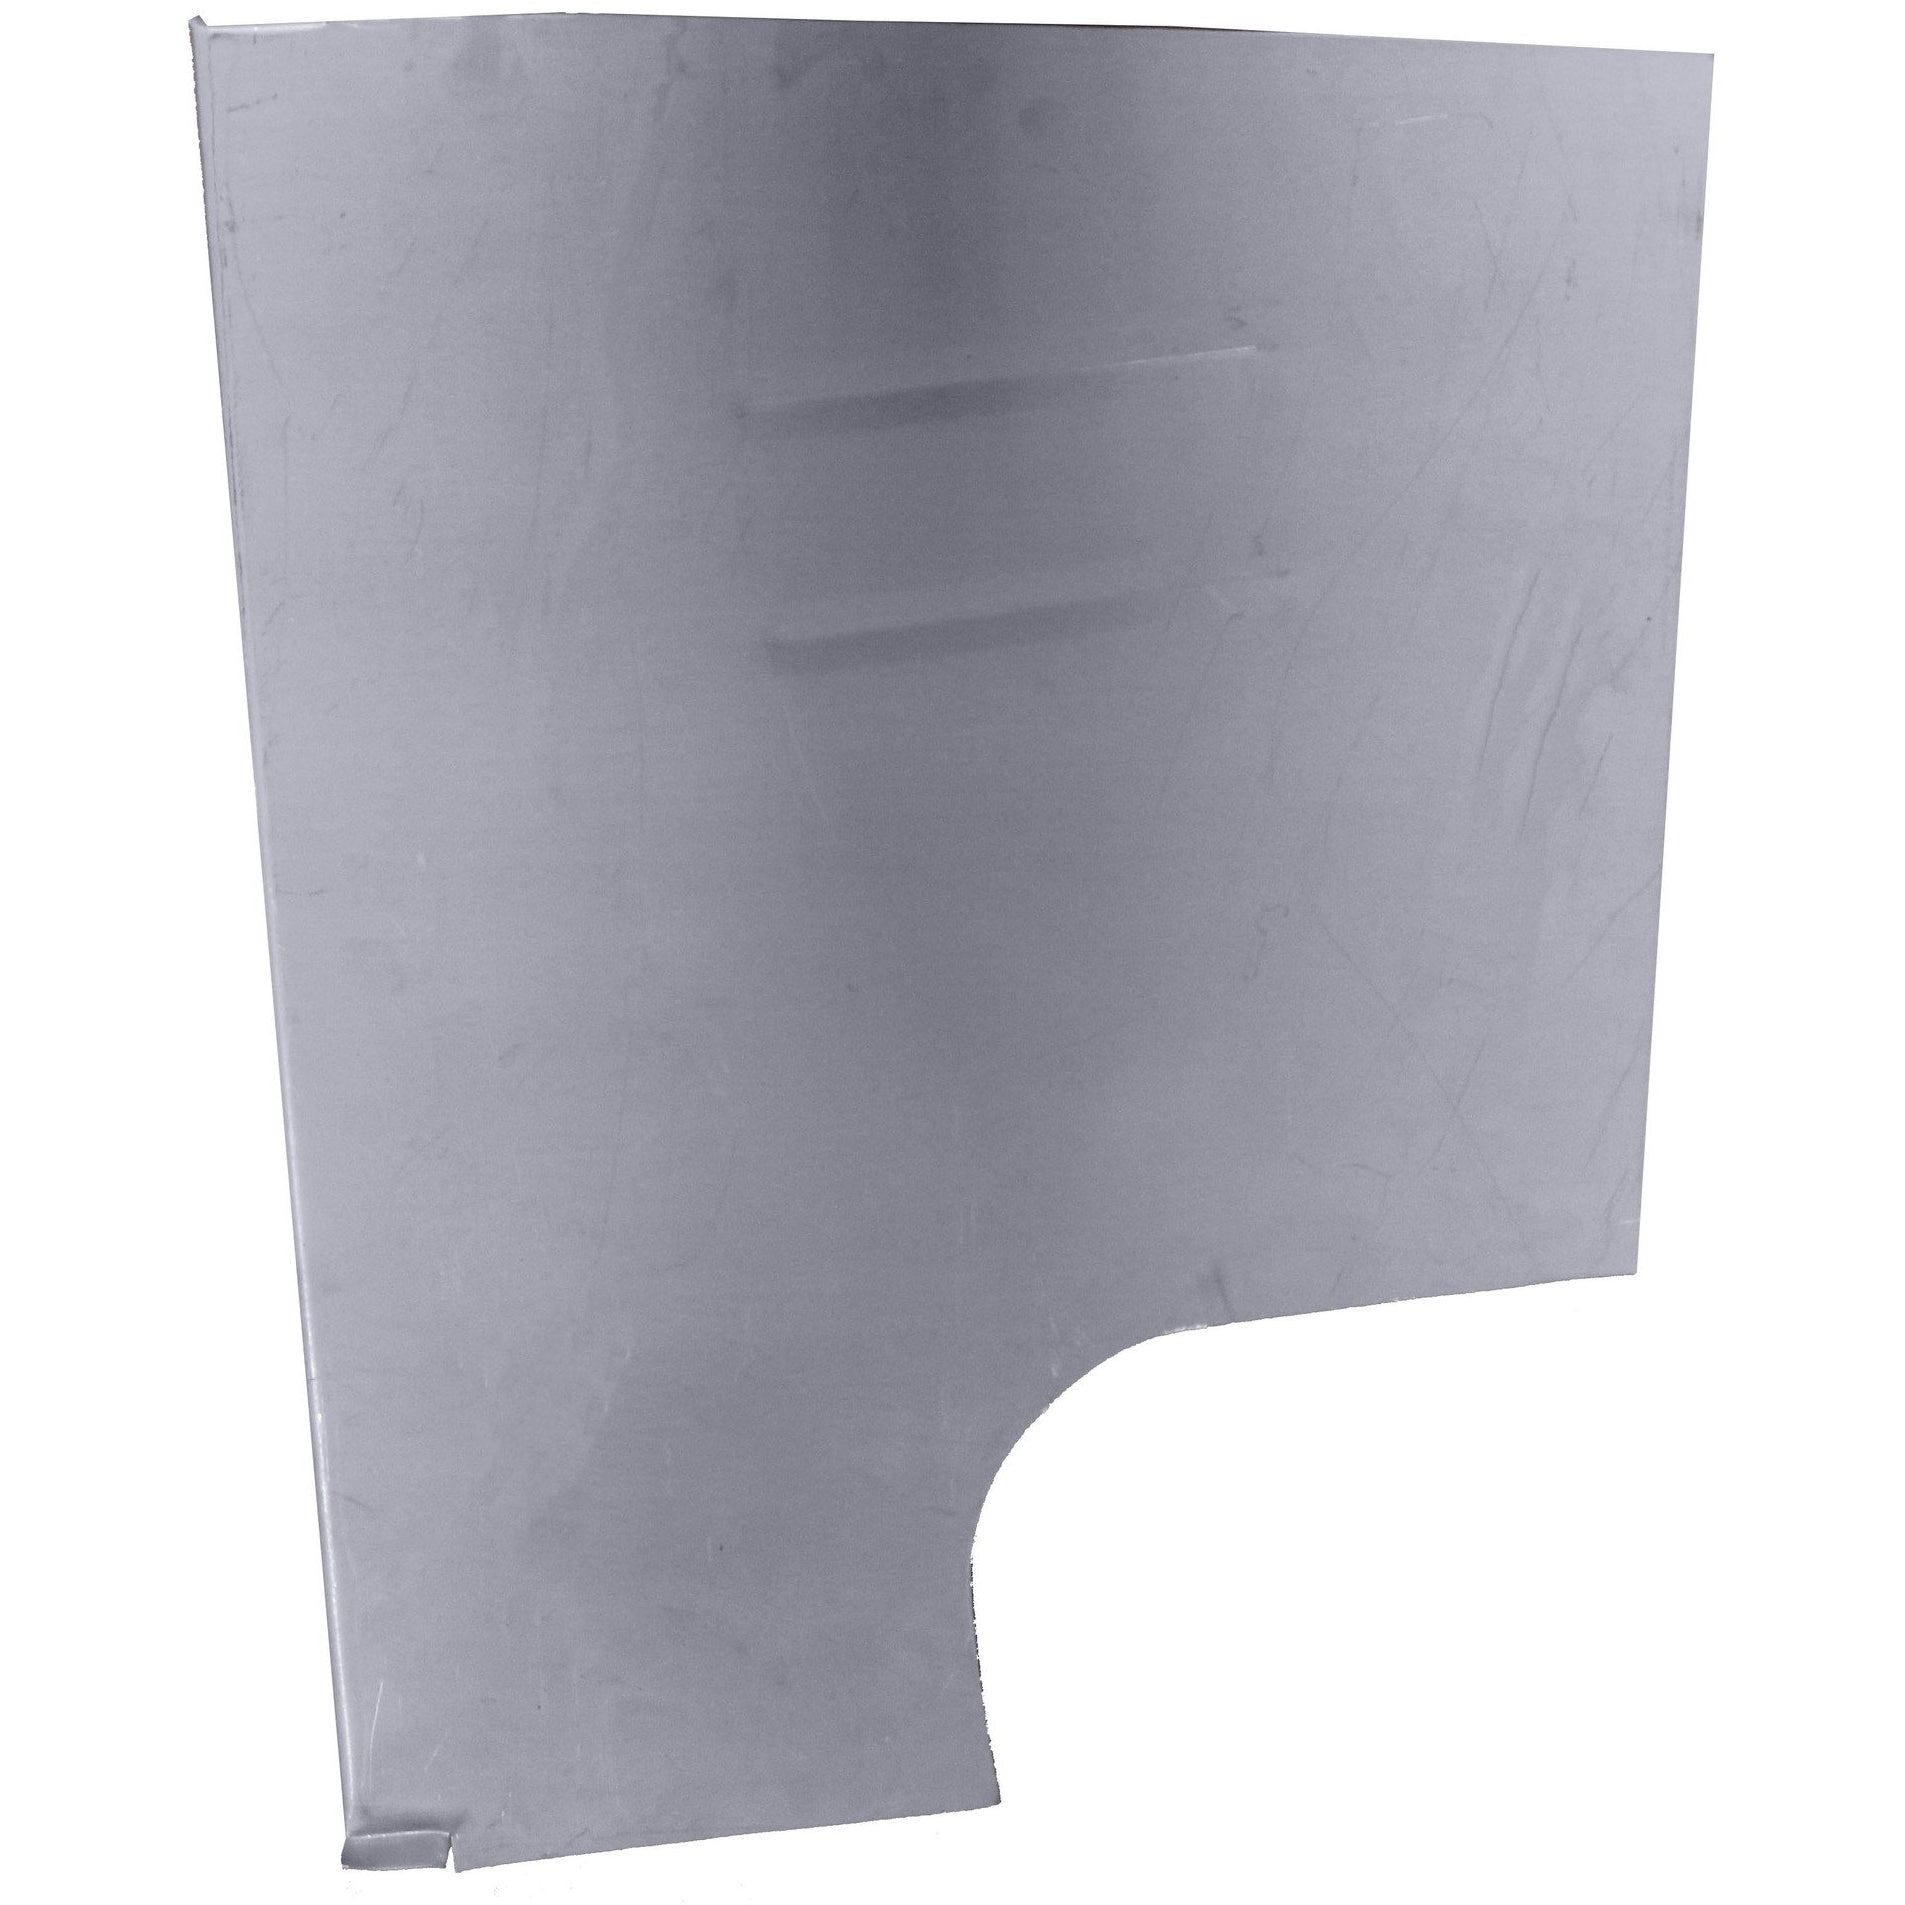 Willys Overland Front Floor Pan Classic 2 Current Fabrication Floor Pan compatible with 1948-1951 Jeepster RH